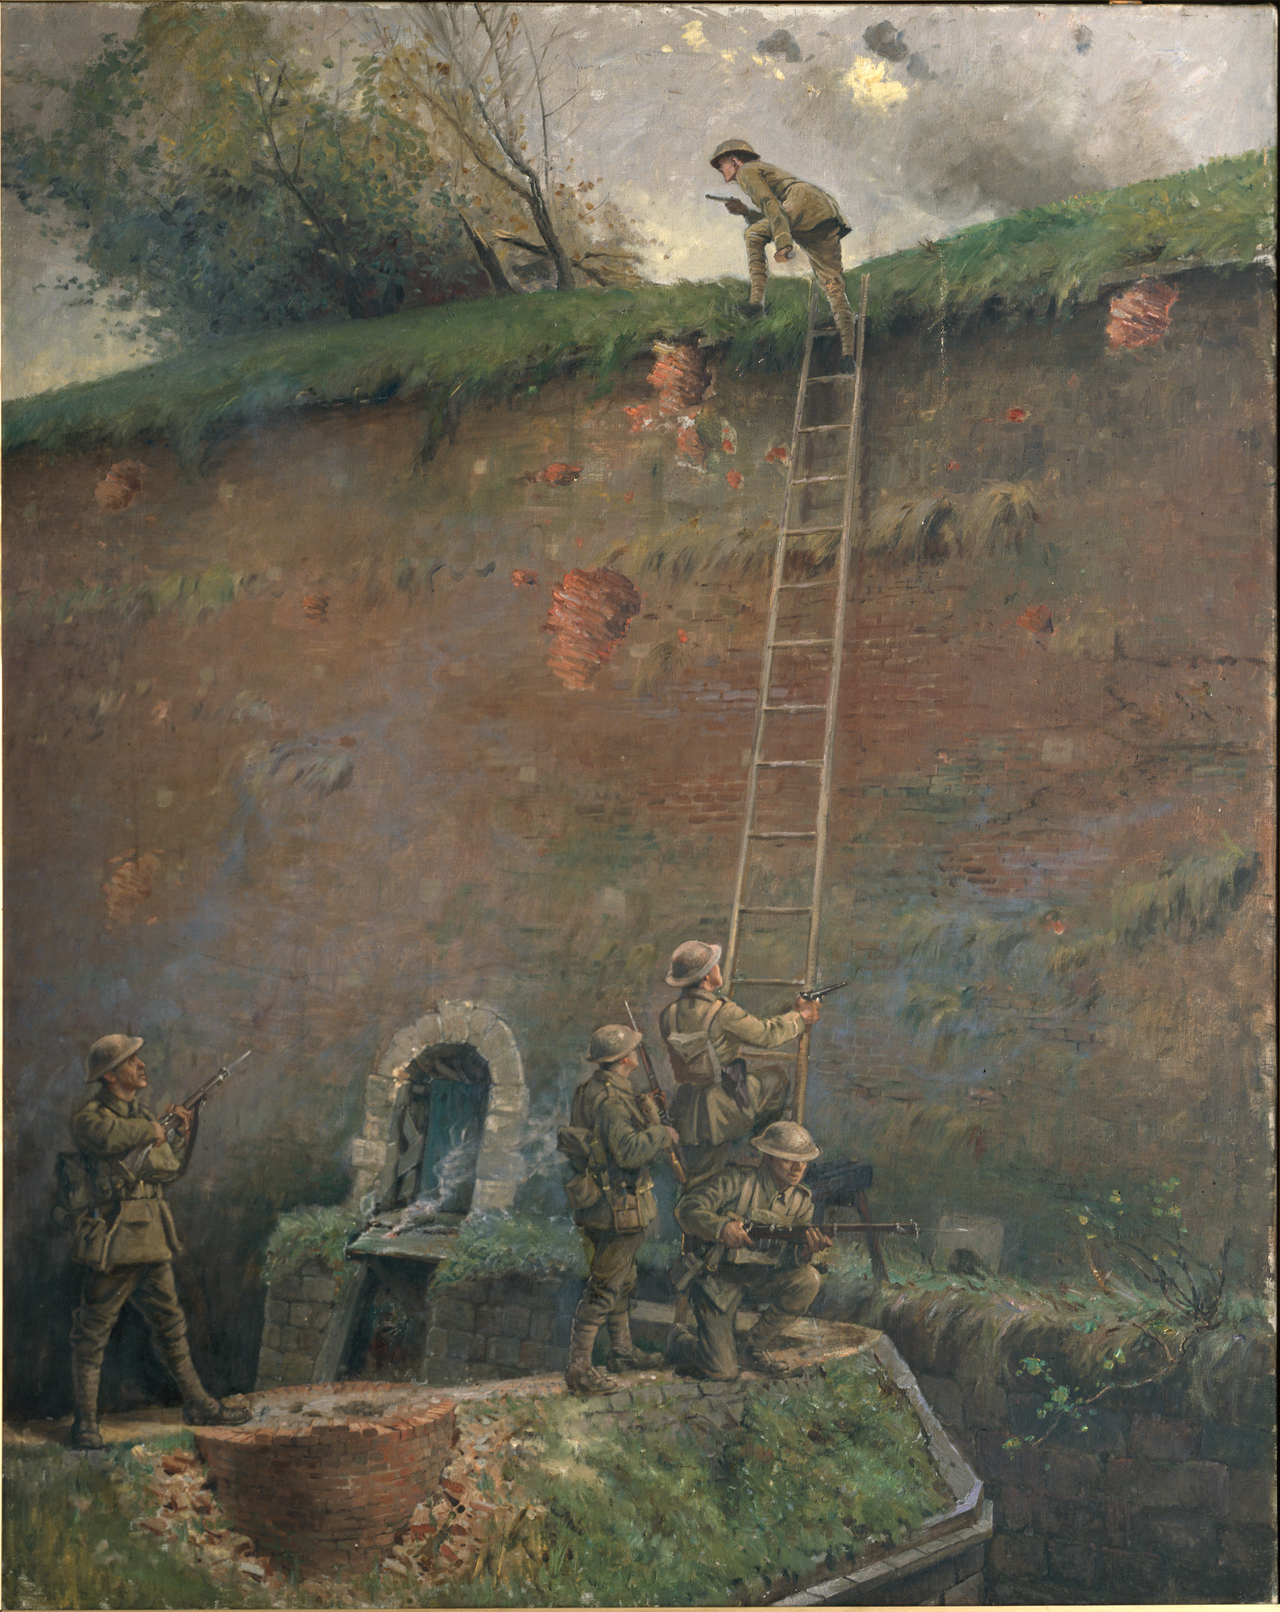 A painting depicting the scaling of the walls of Le Quesnoy by Second Lieutenant Averill, executed in 1920 by George Edmund Butler, who was an official artist of the New Zealand Expeditionary Force.